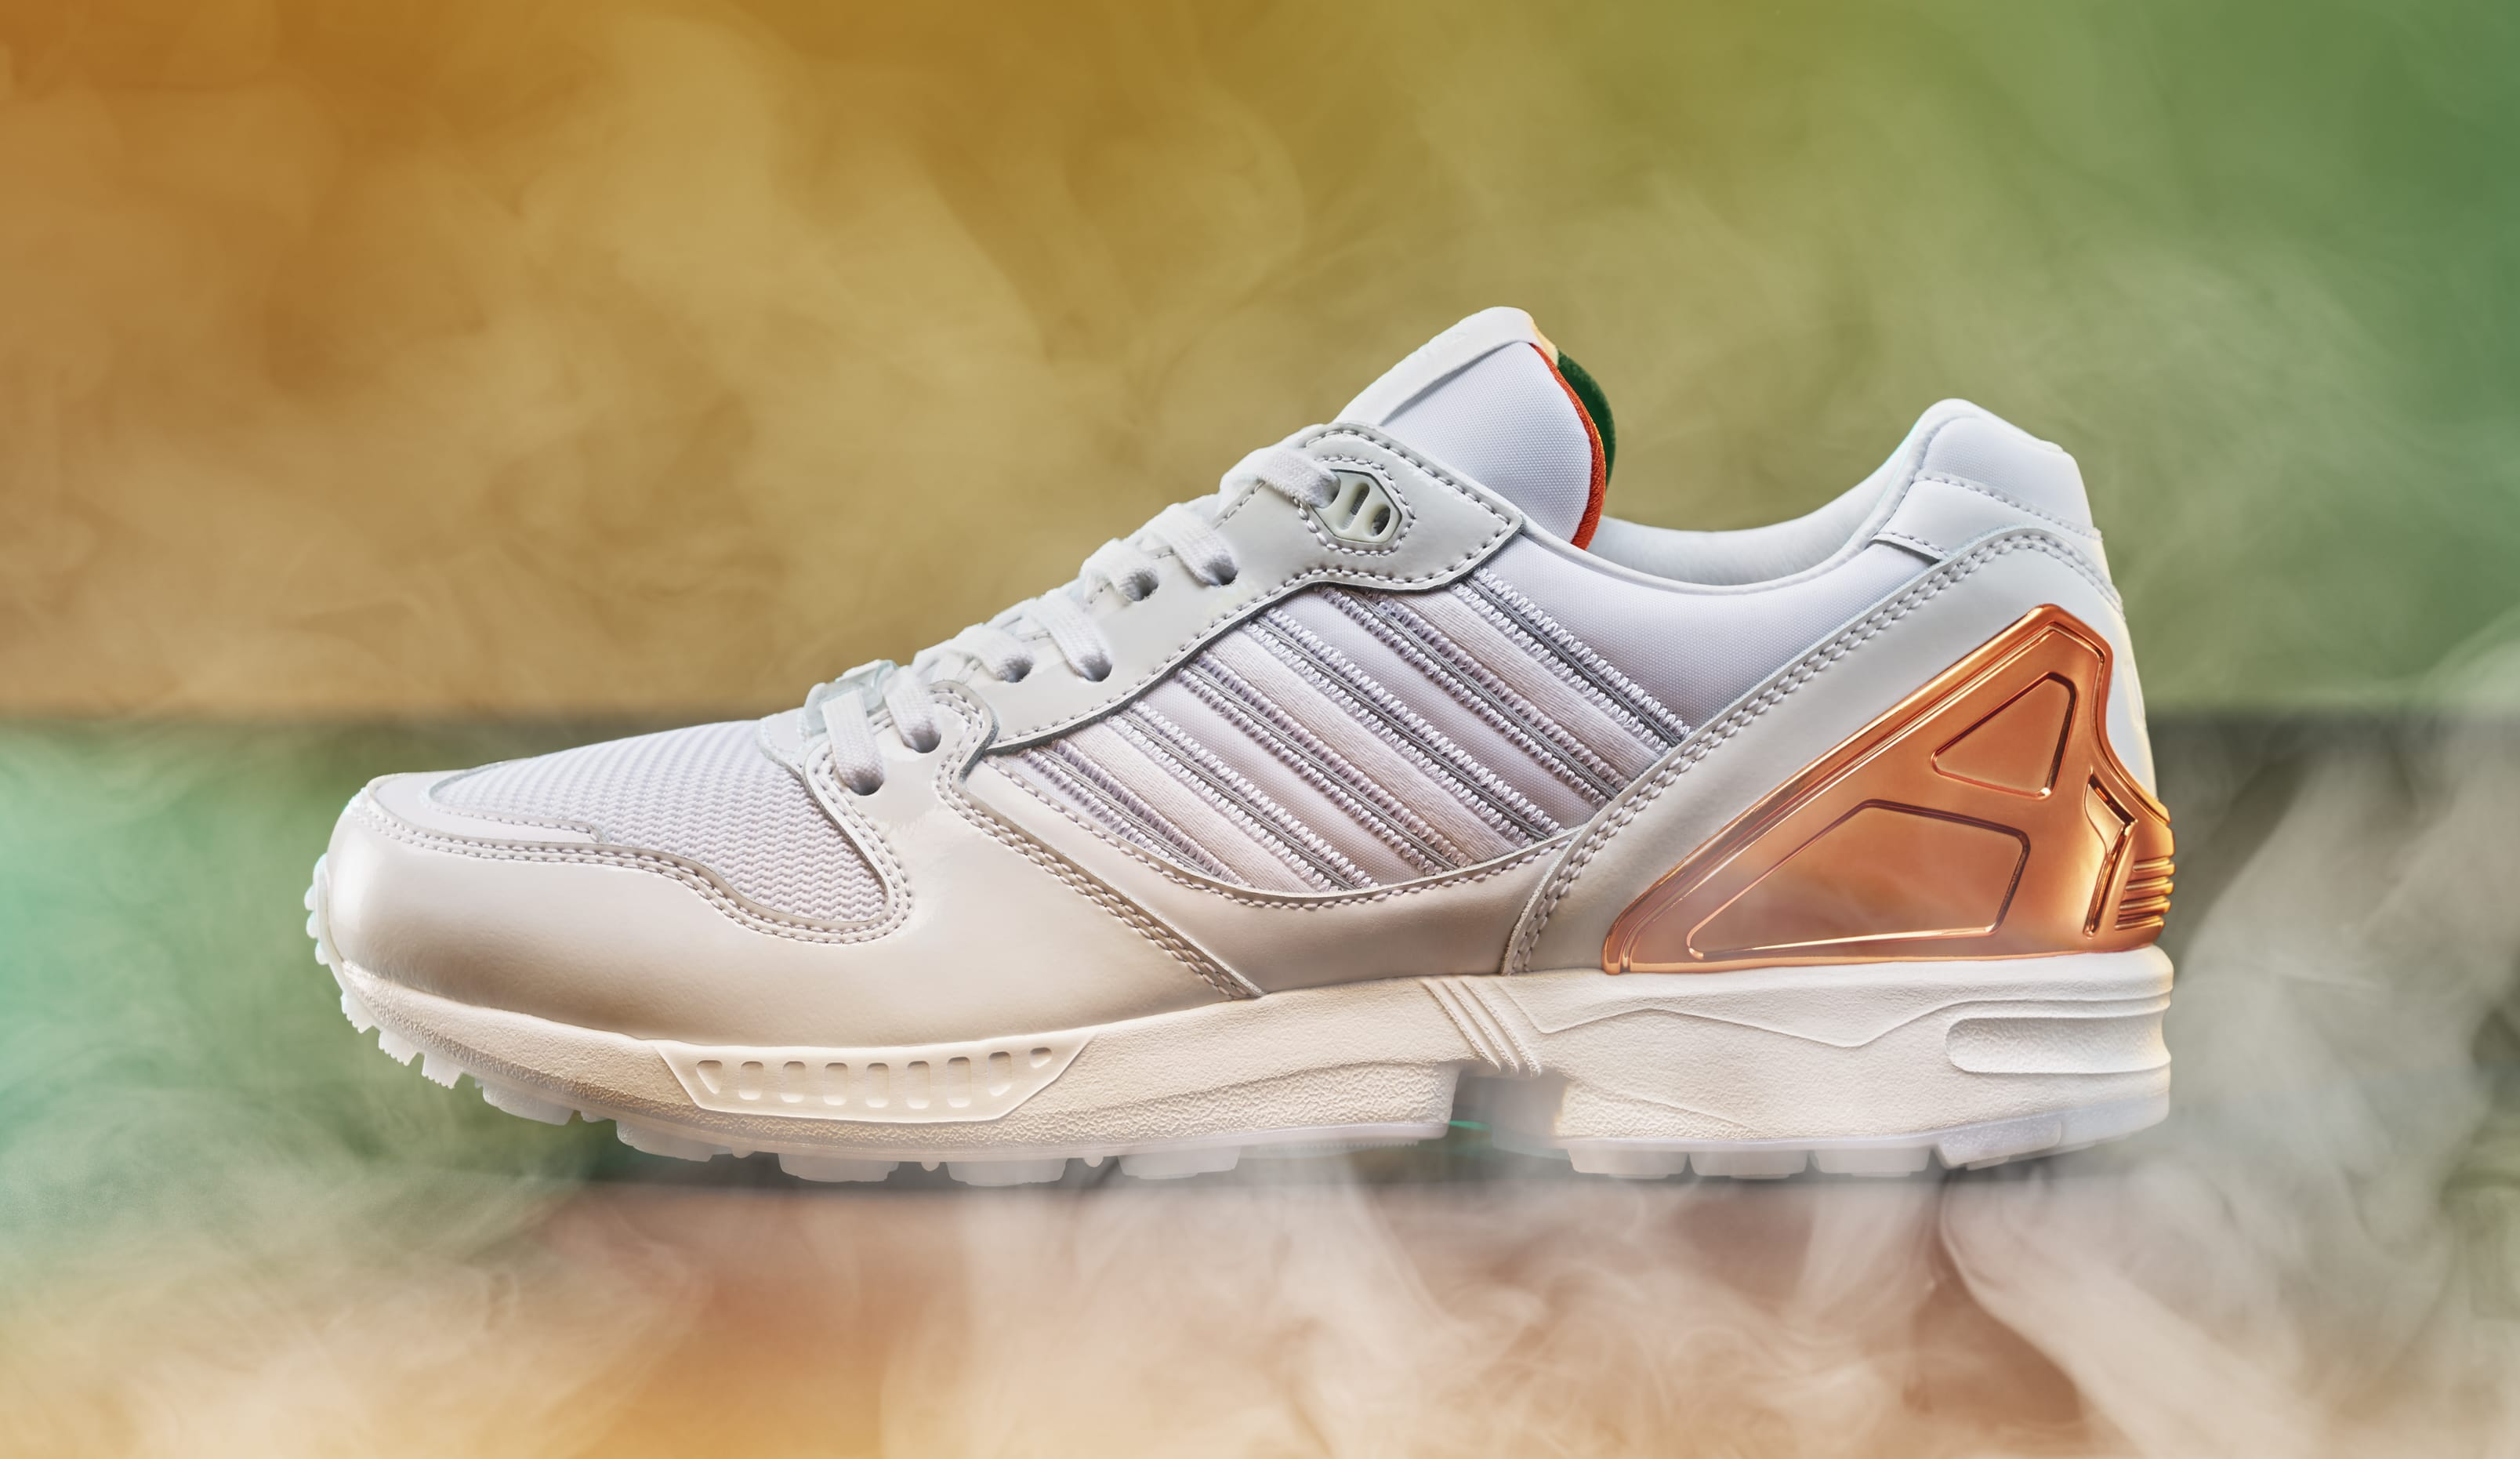 Adidas ZX 5000 'The Miami University' Lateral